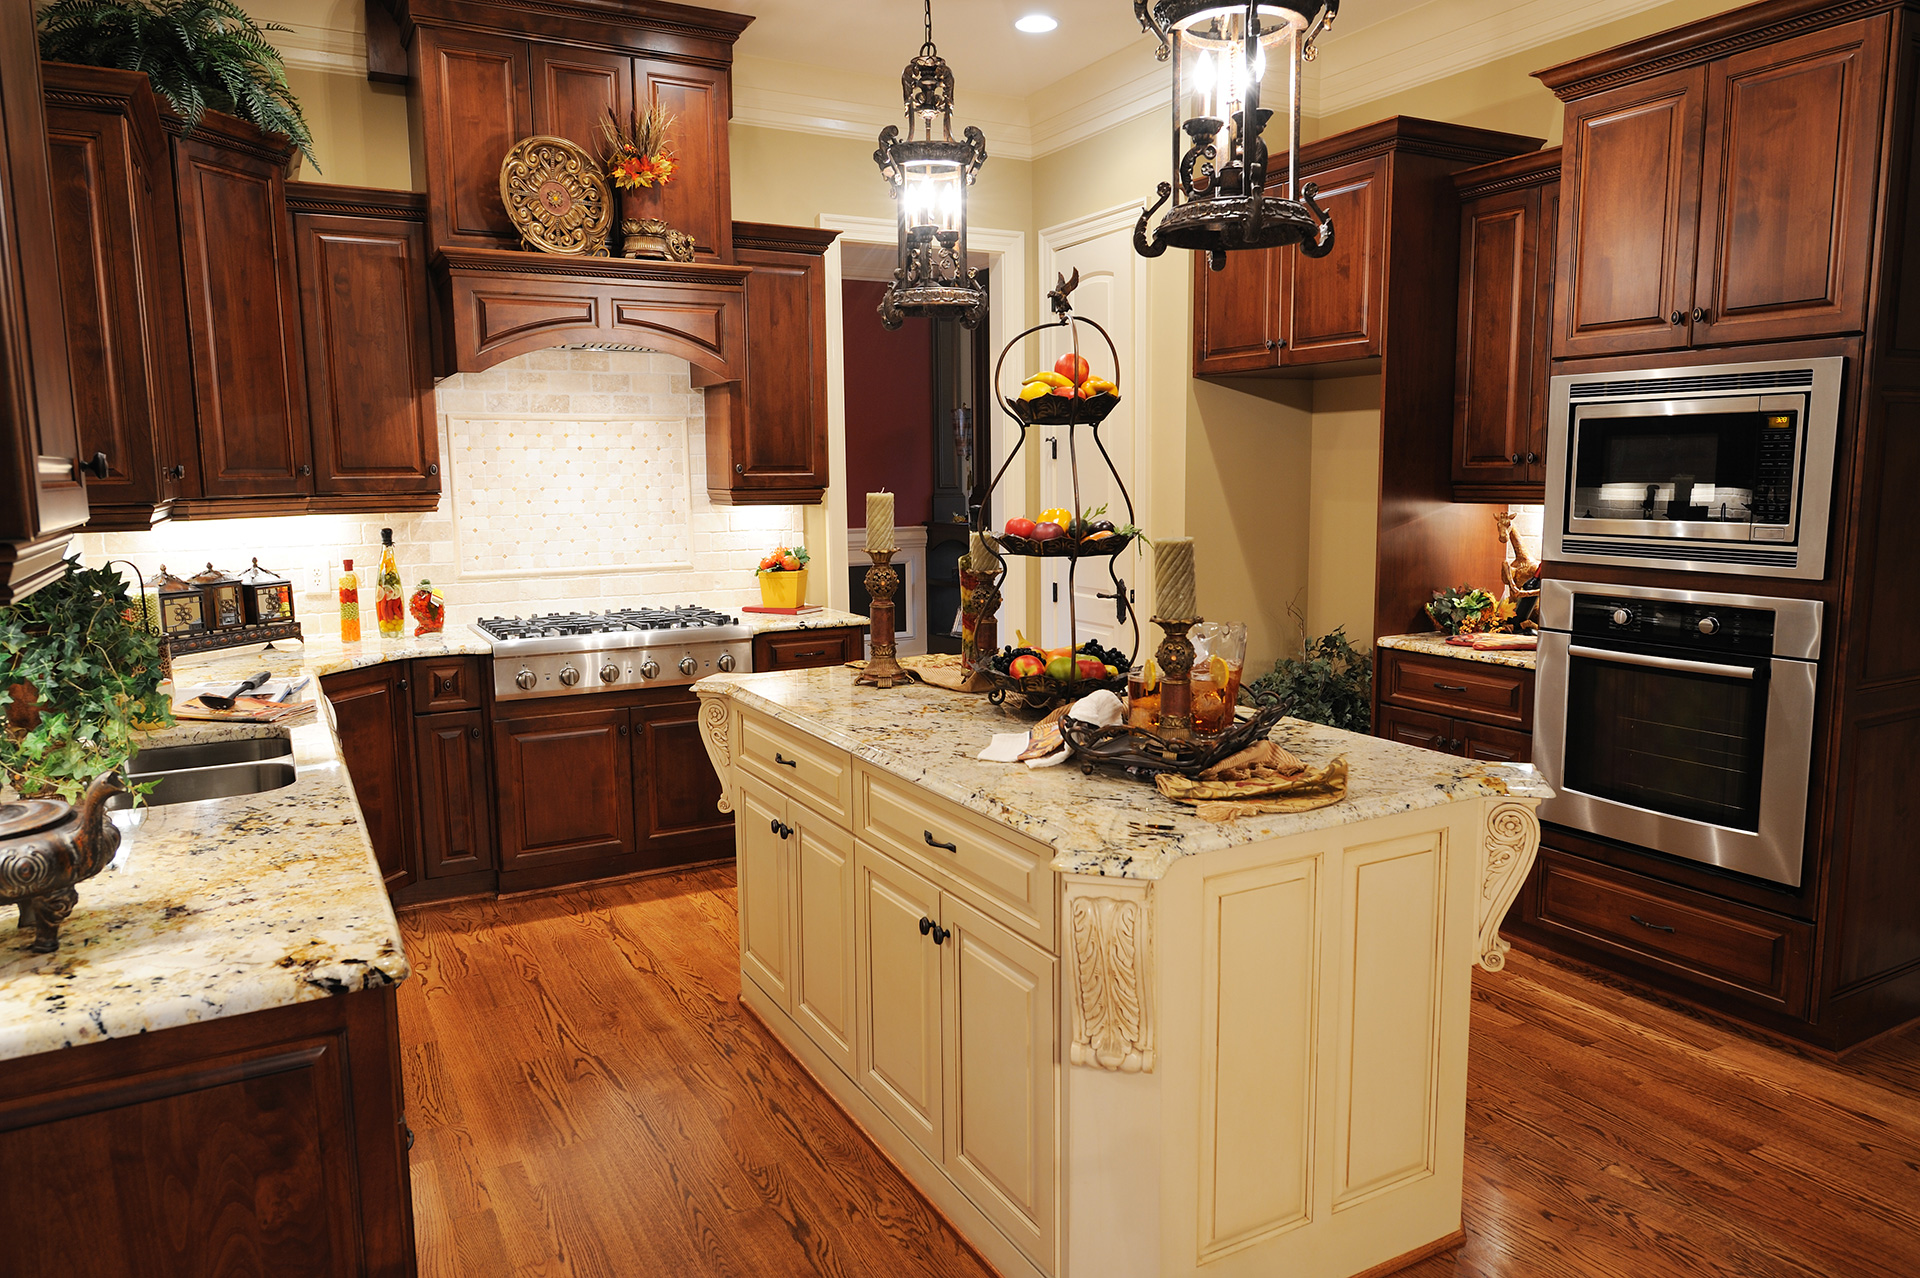 Kitchen Cabinets 101 - CabinetCorp on galley kitchen with center island, white kitchen with center island, u shaped breakfast nook, kitchen cabinet design with center island, u shaped family room, small kitchen with center island, kitchen layouts with center island,